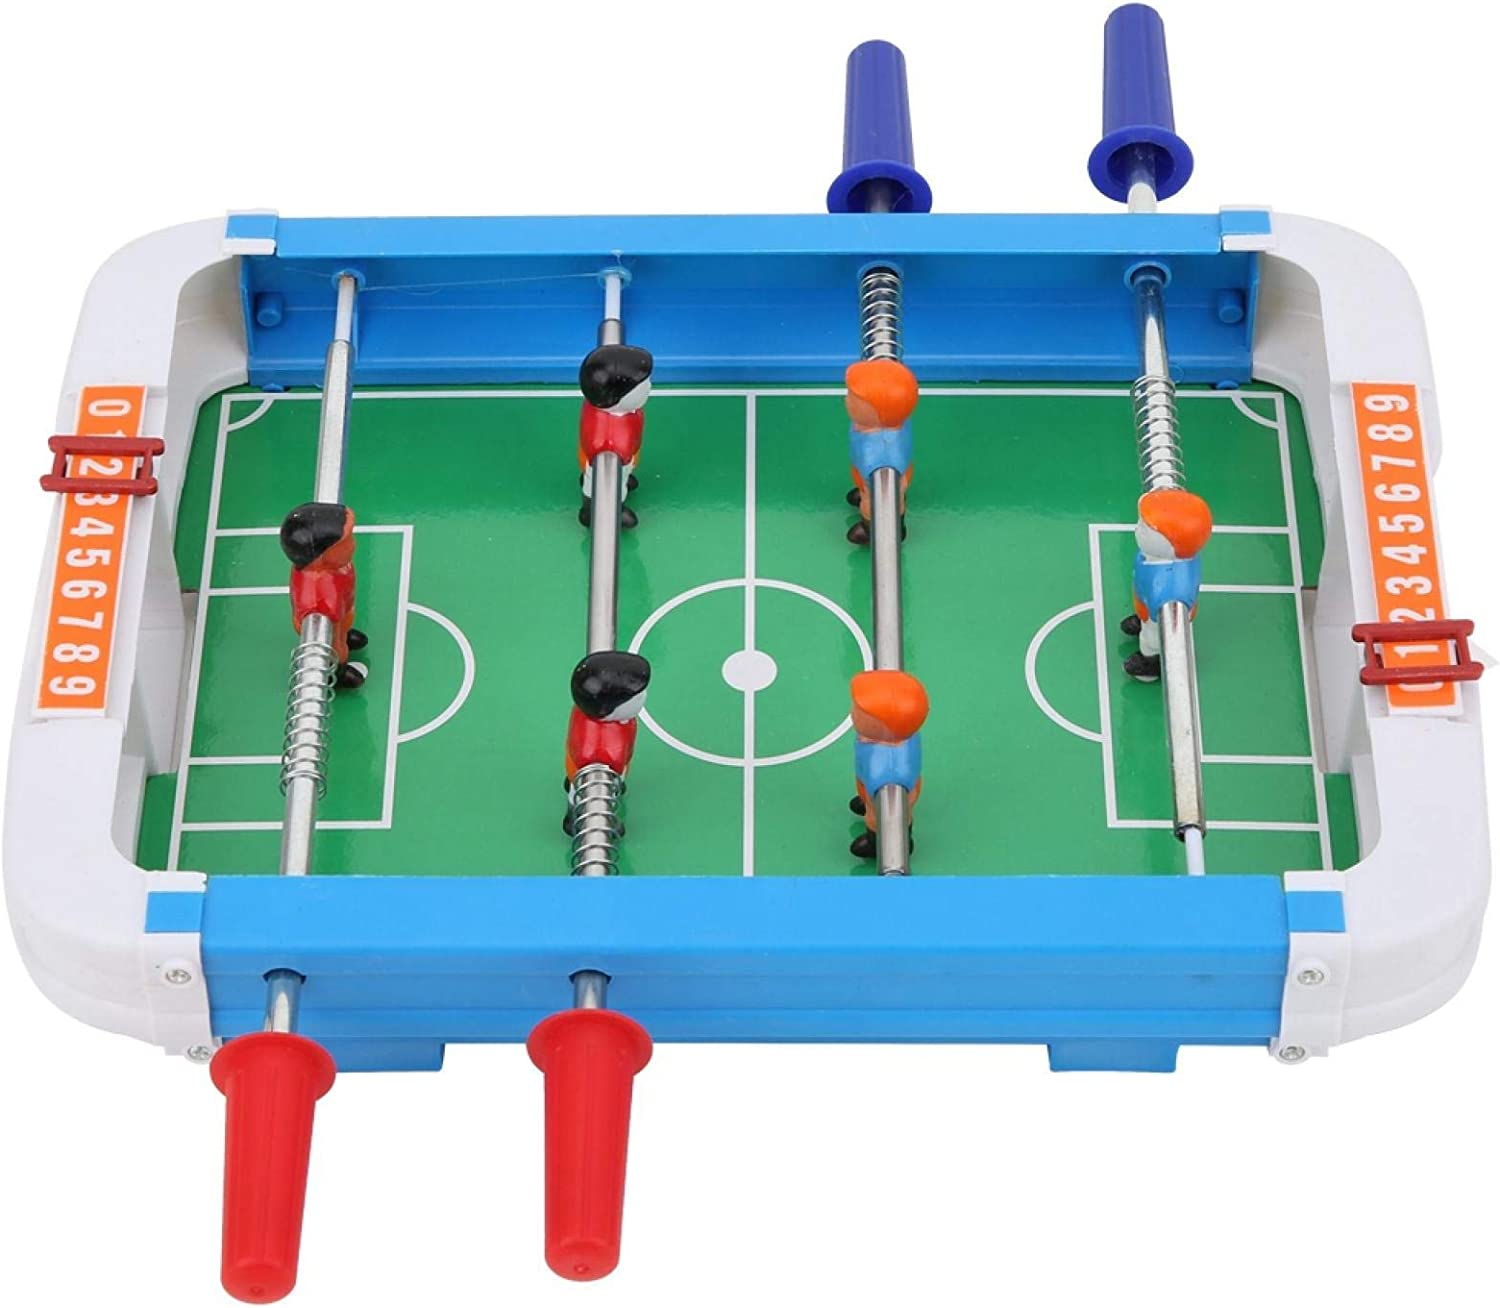 Cyrank Portable Industry No. 1 Foosball Table Tabletop Kids for Large special price